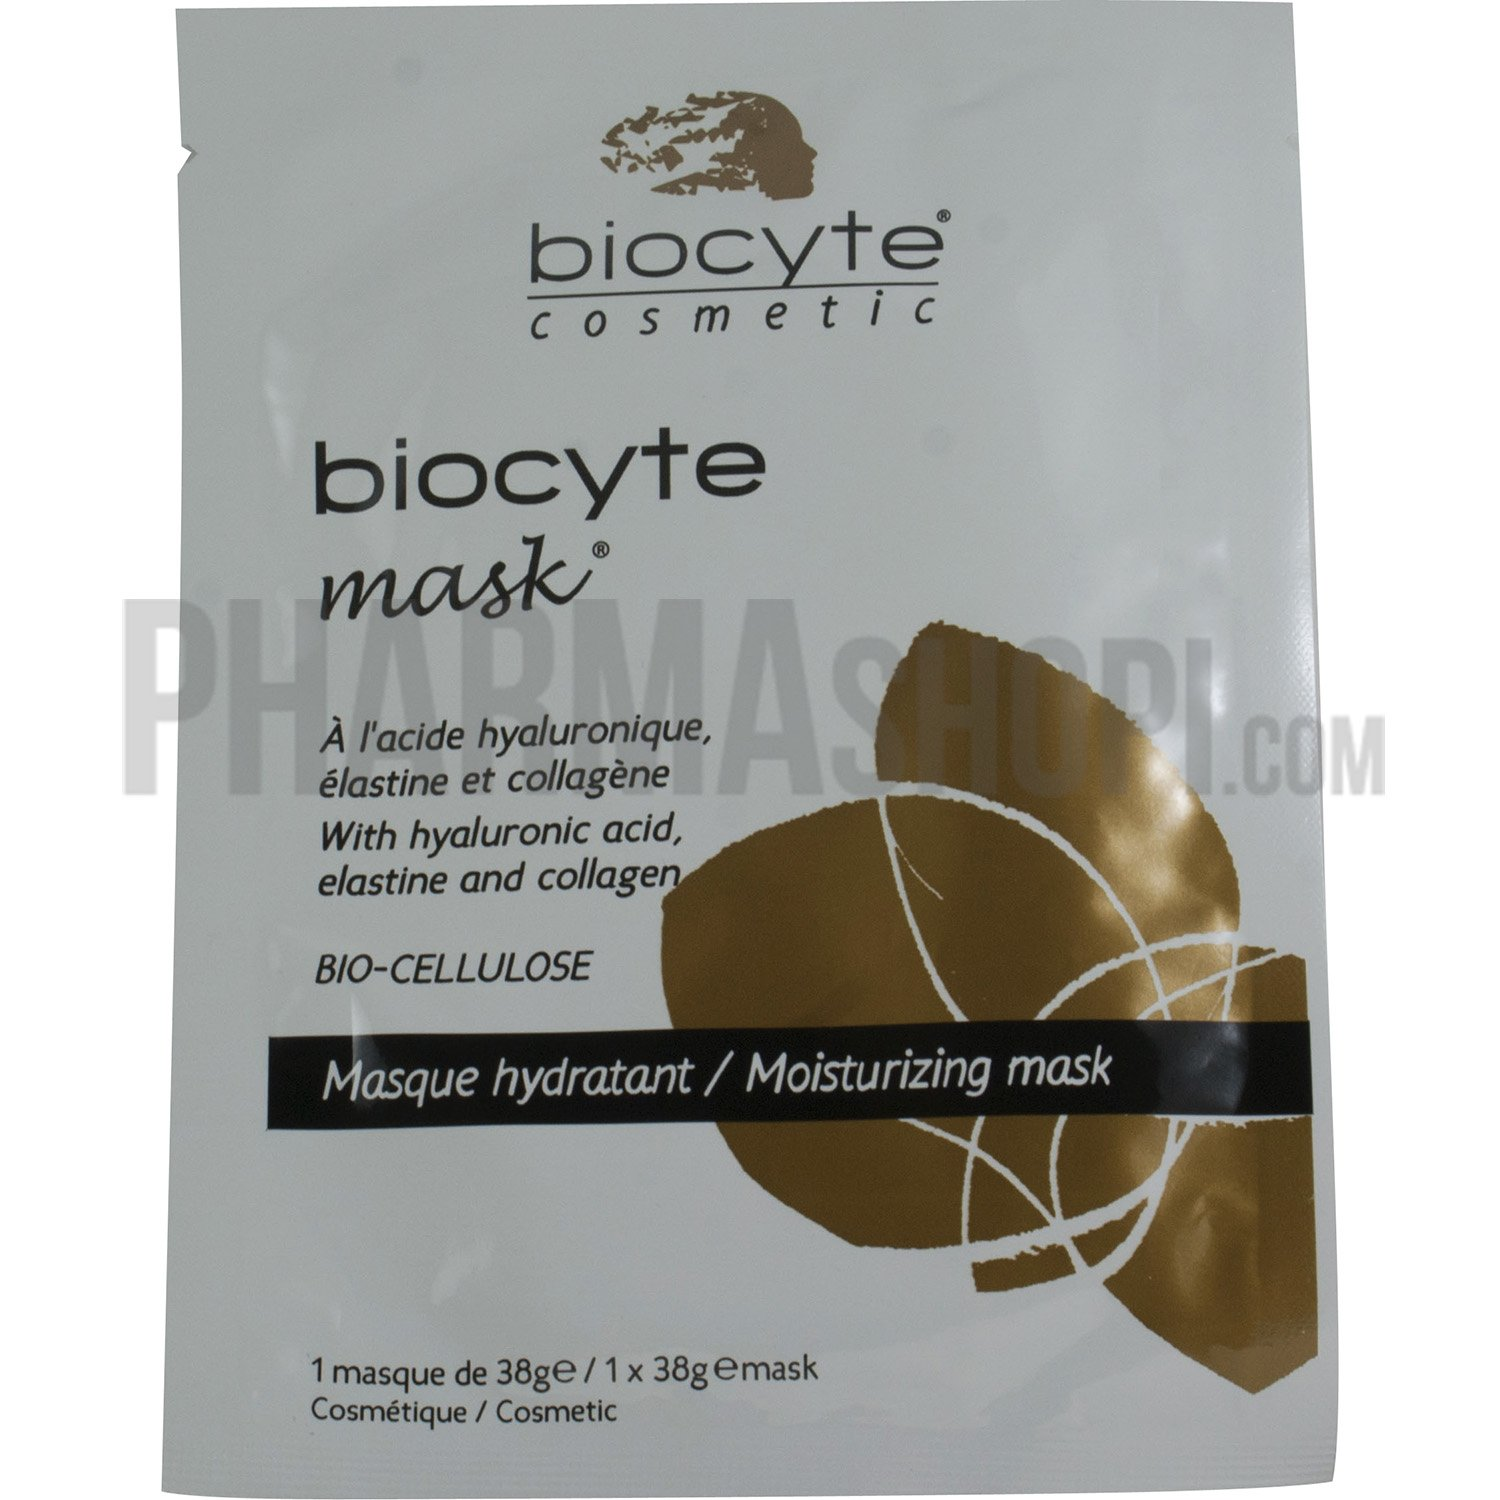 mask hydratant biocyte cosmetic 1 masque de 38 g. Black Bedroom Furniture Sets. Home Design Ideas